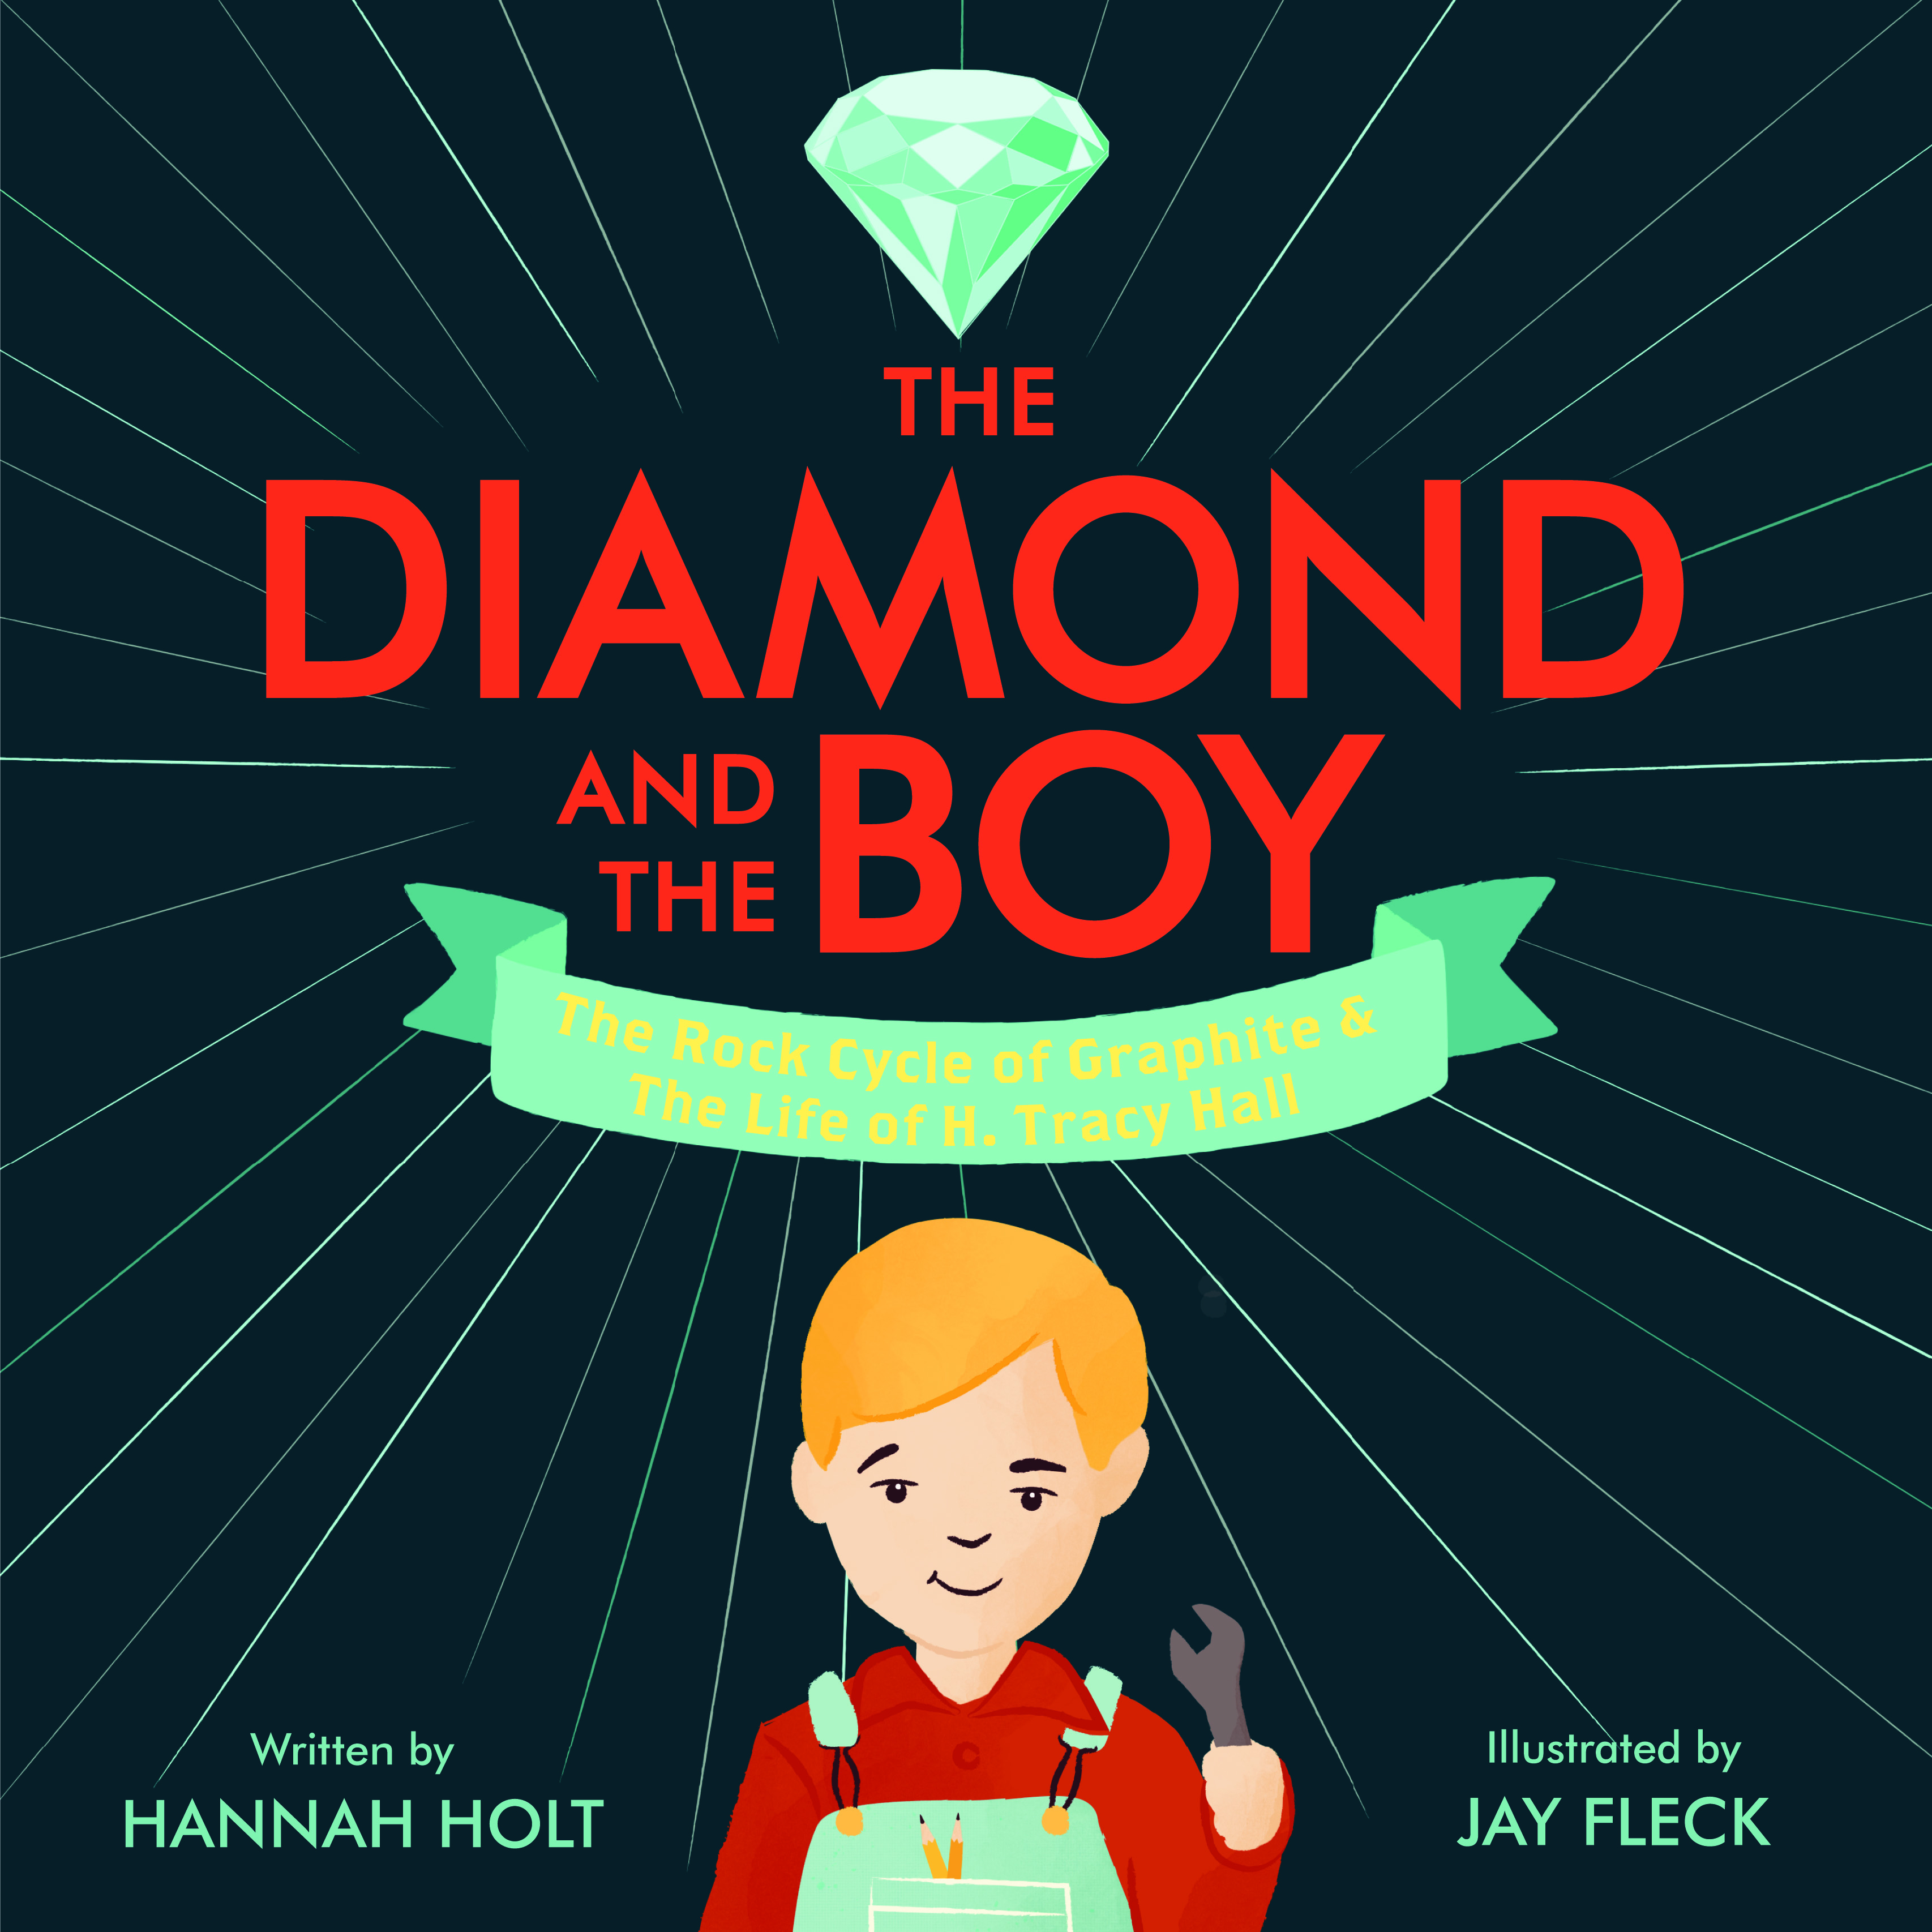 THE DIAMOND & THE BOY